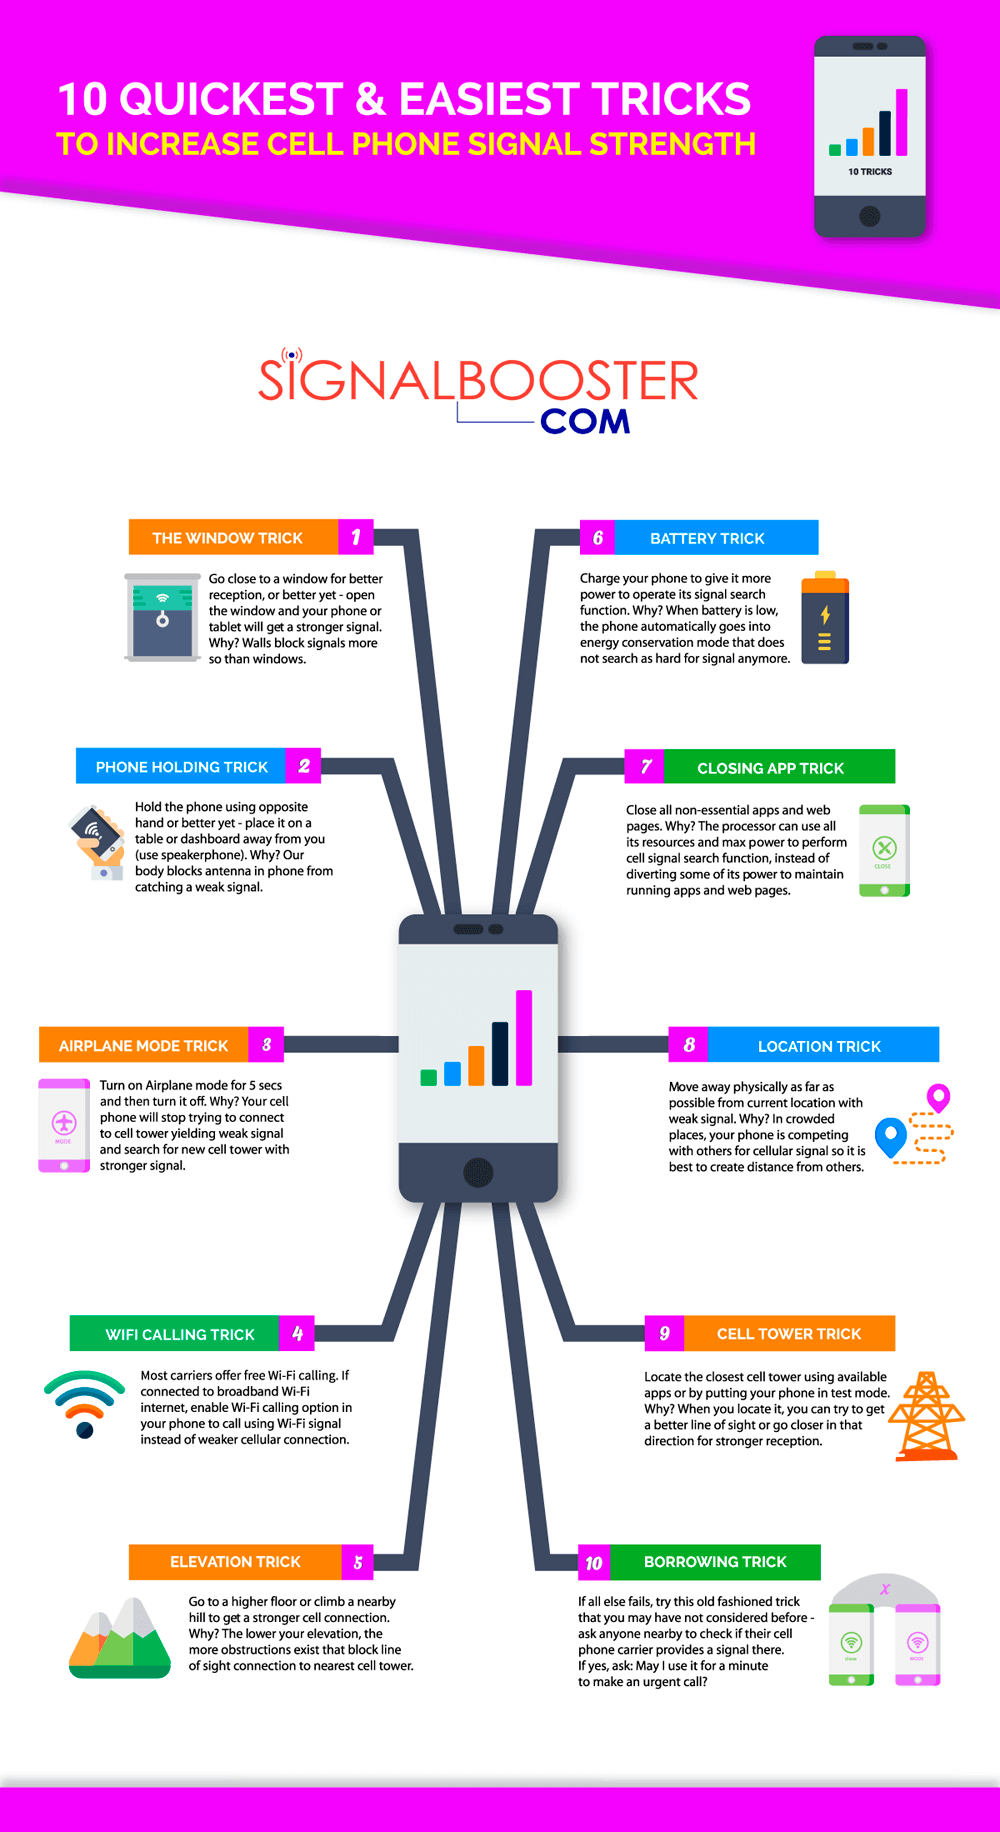 Always Enjoy Strong Cell Phone Signal Using These Few Simple Tricks!